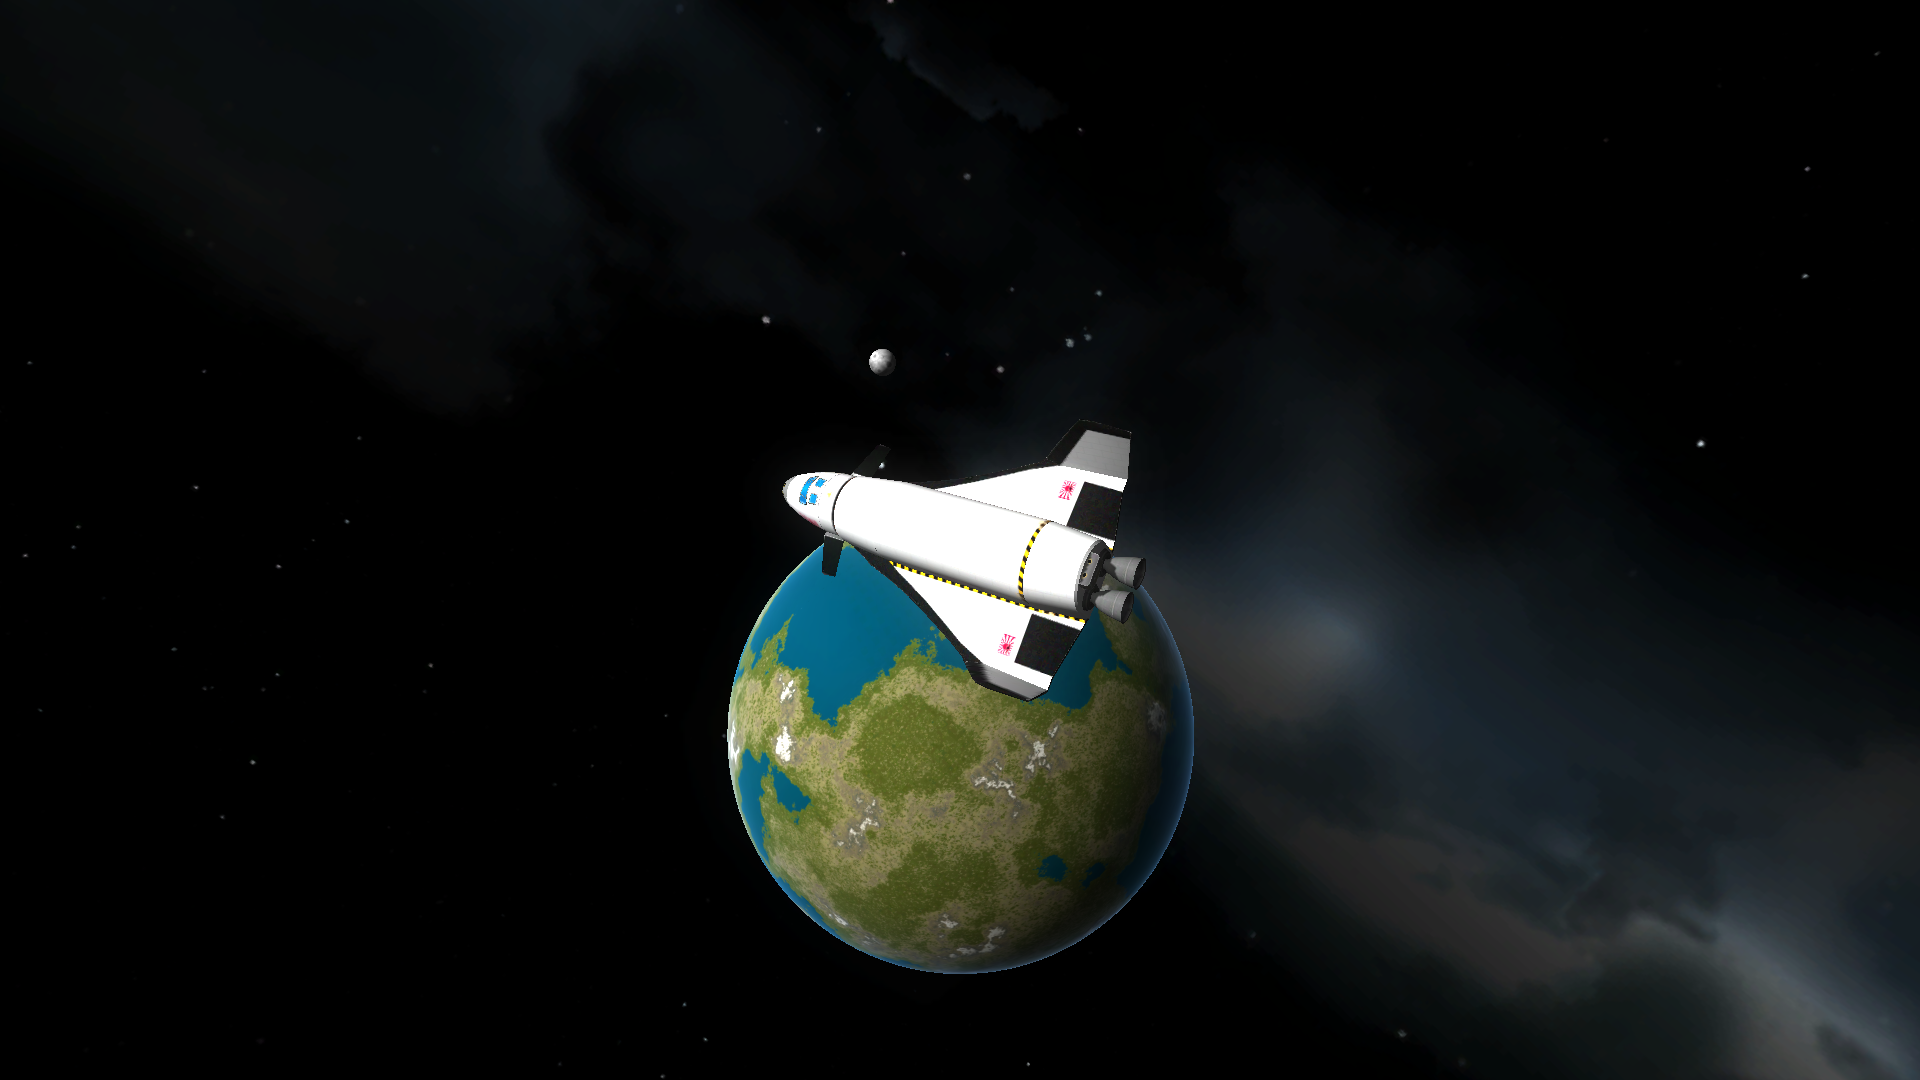 Kerbal Space Program Fondo De Pantalla Hd Fondo De